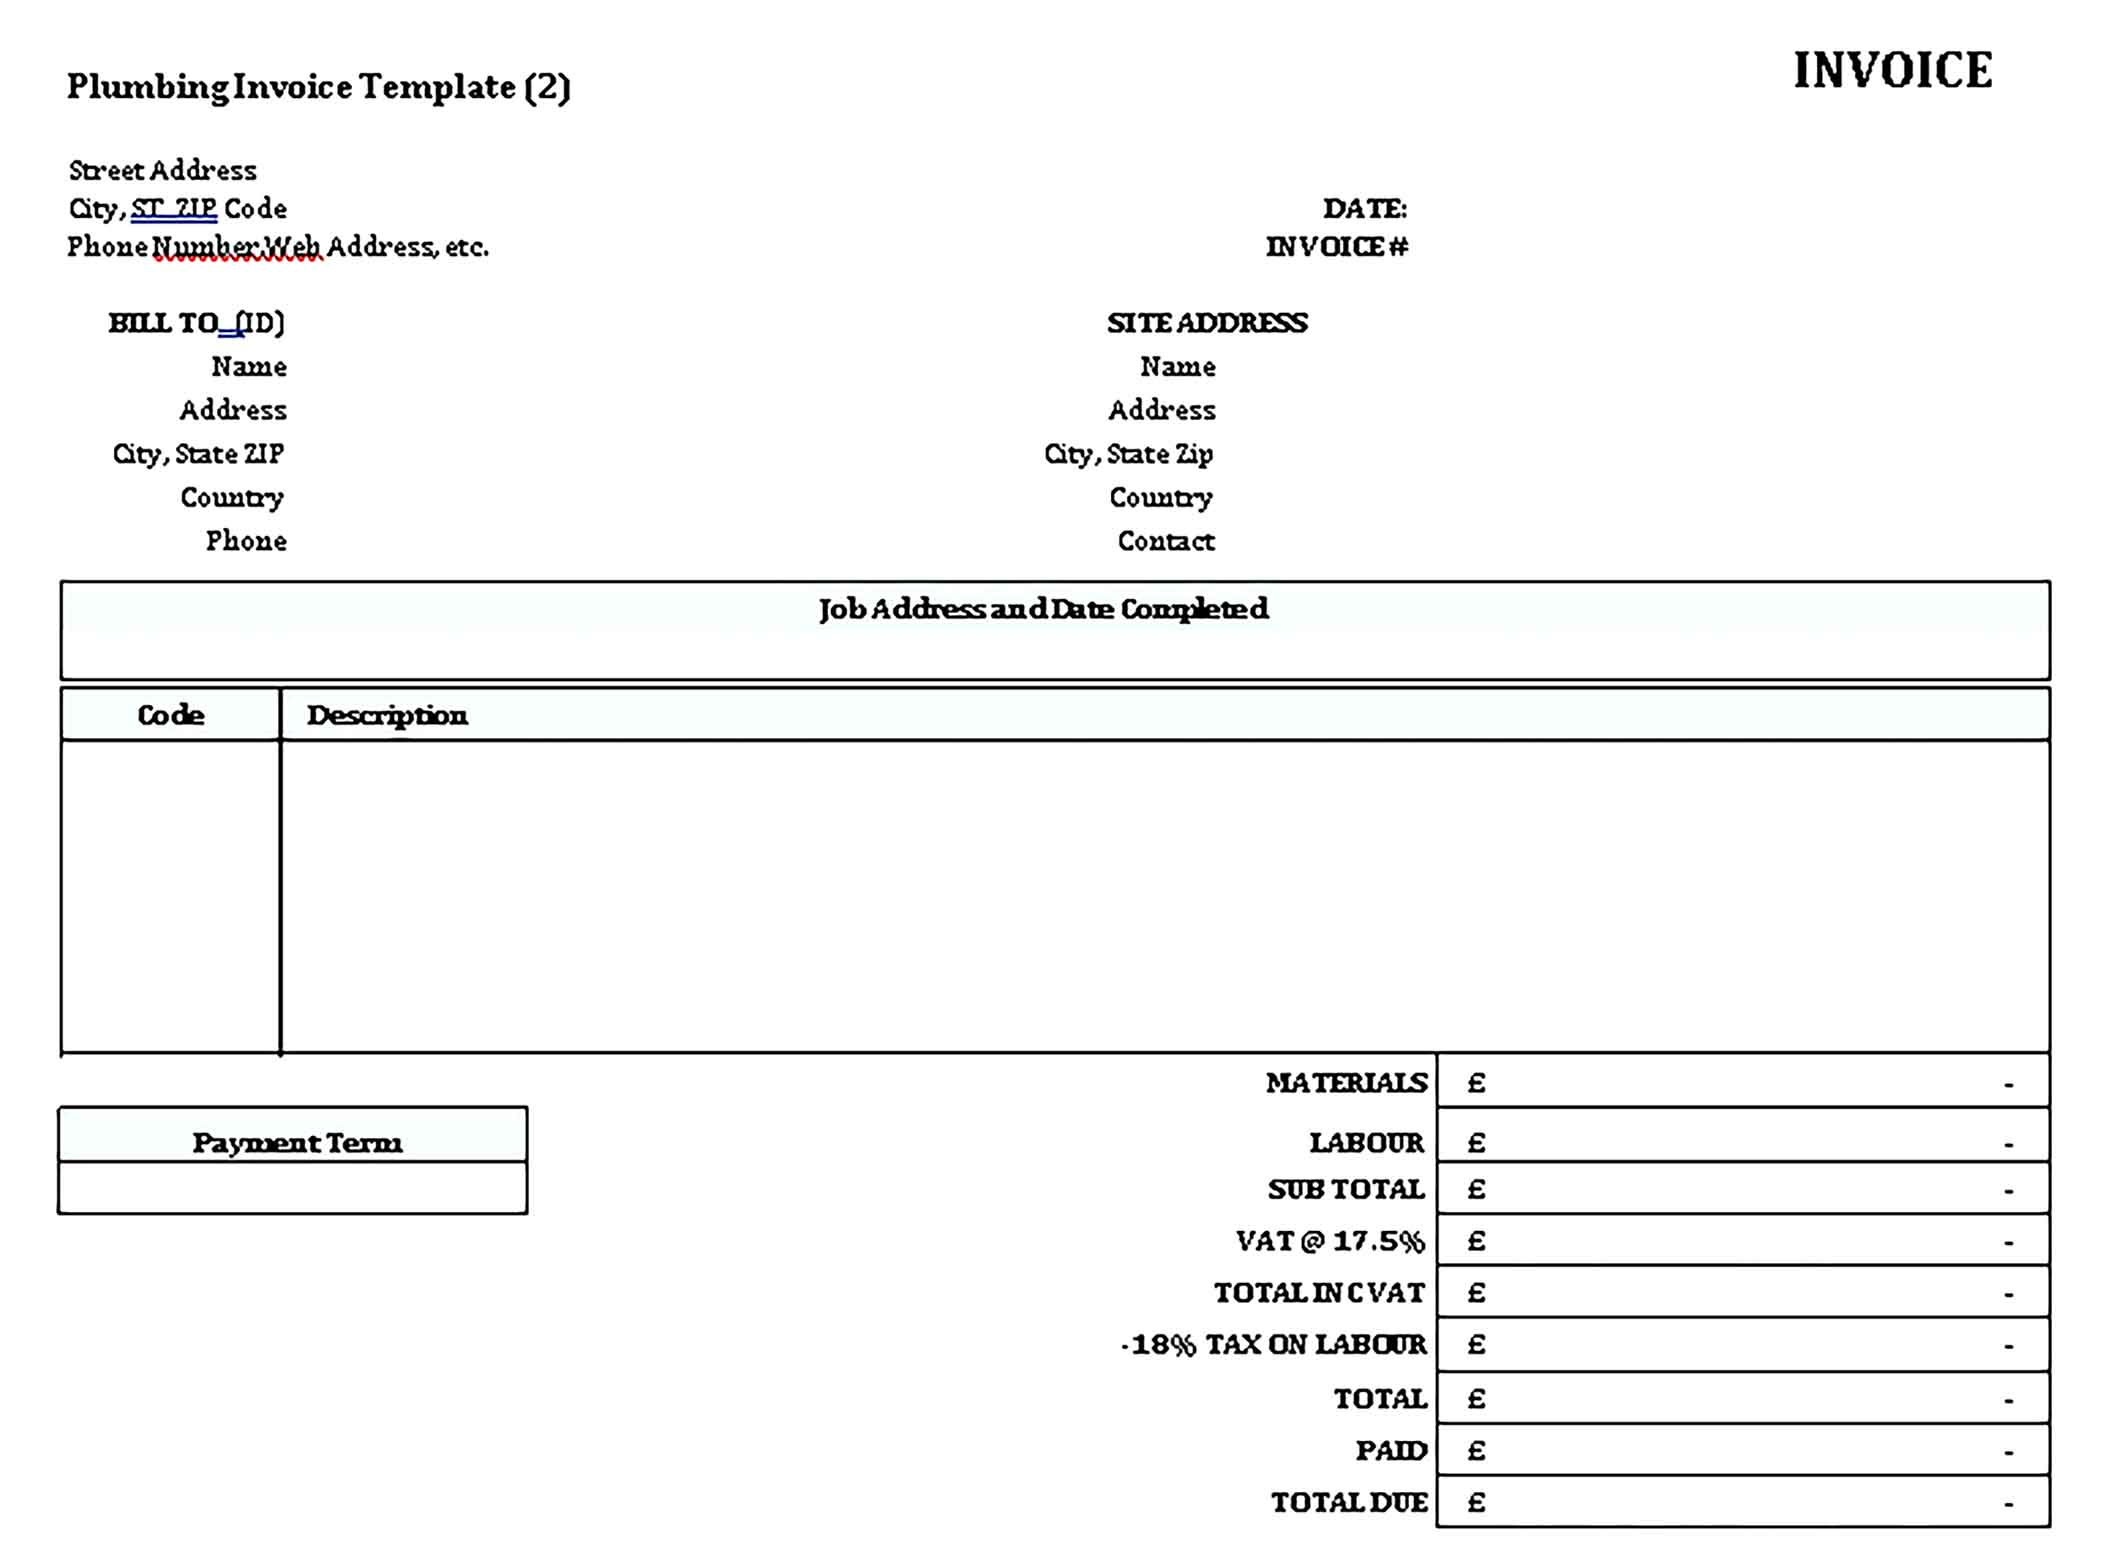 Sample Plumbing Contractor Receipt 1 Templates